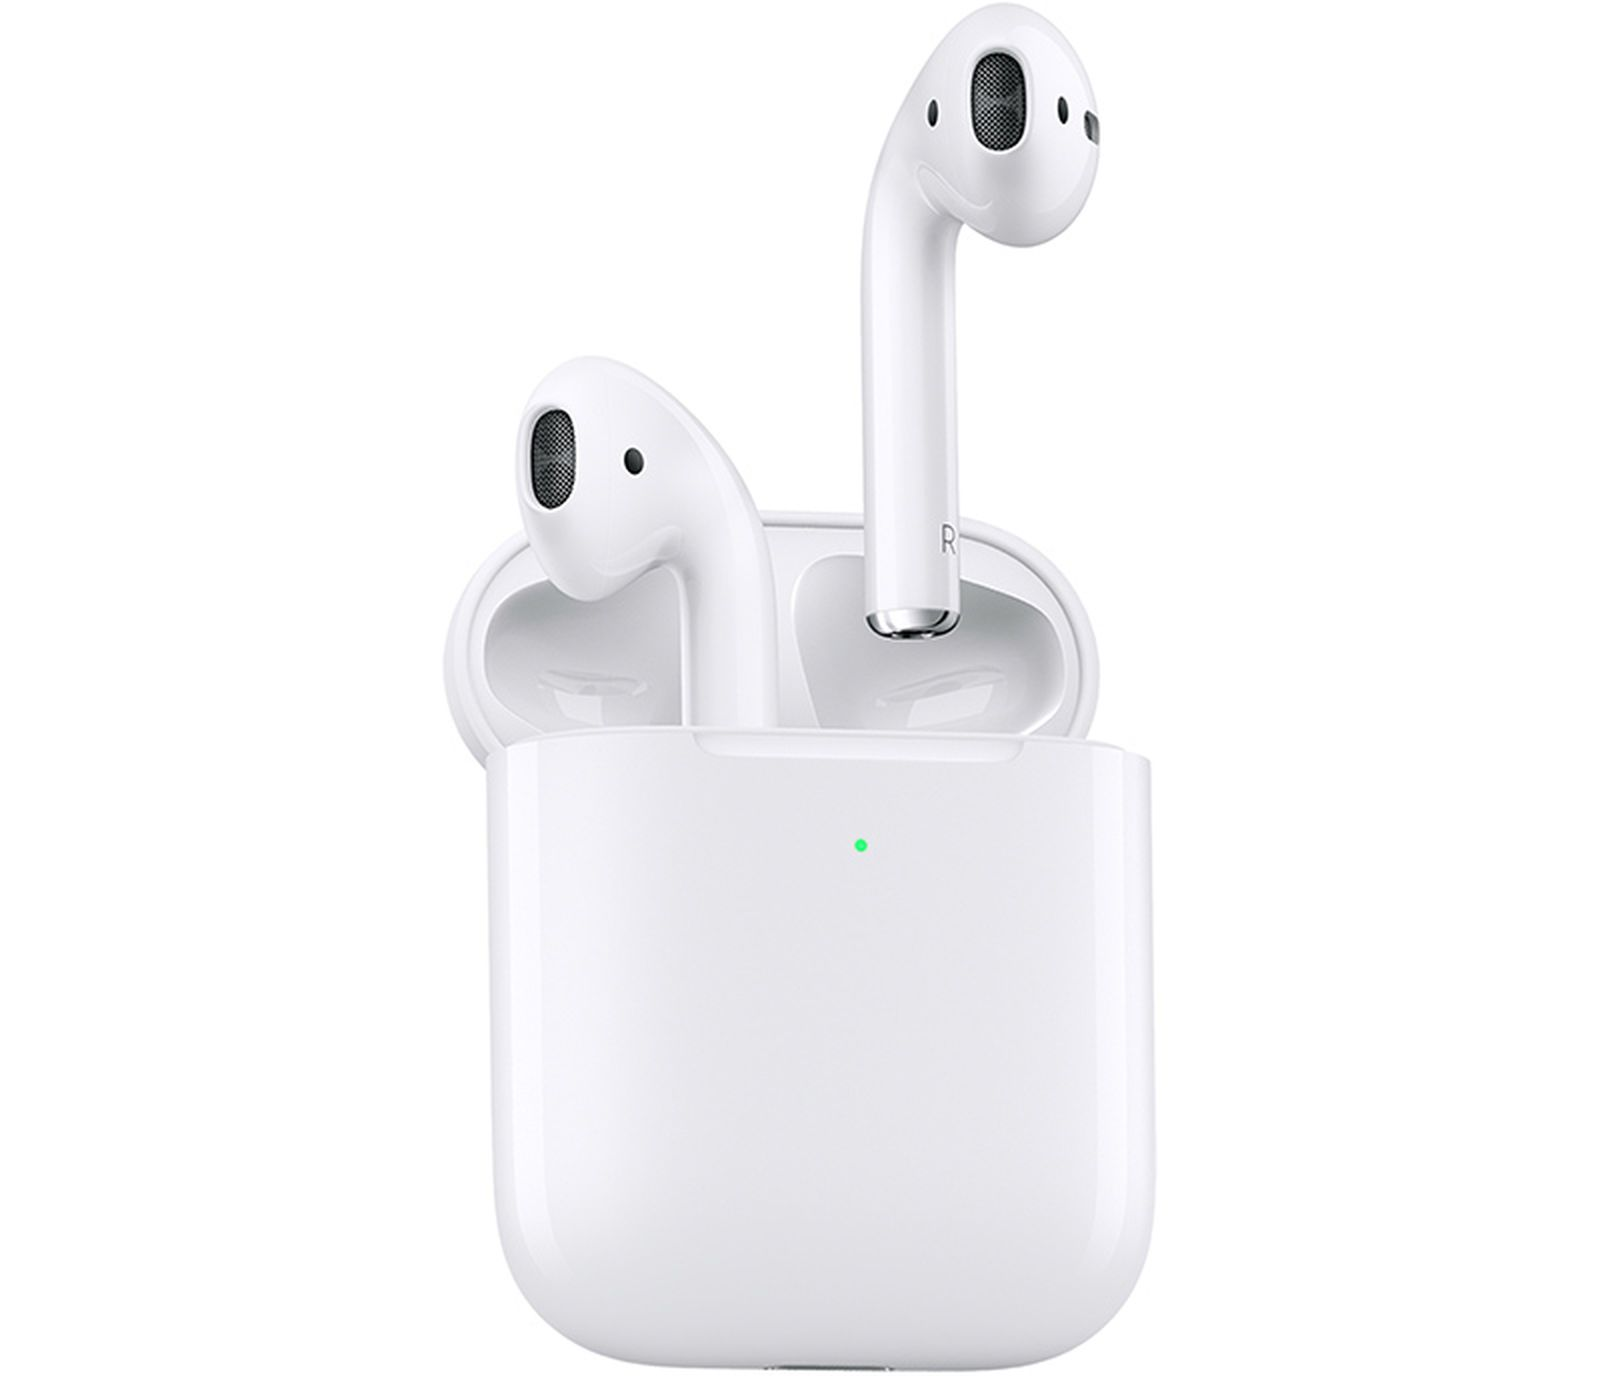 New Airpods 2 Vs Old Airpods 1 Comparison Macrumors